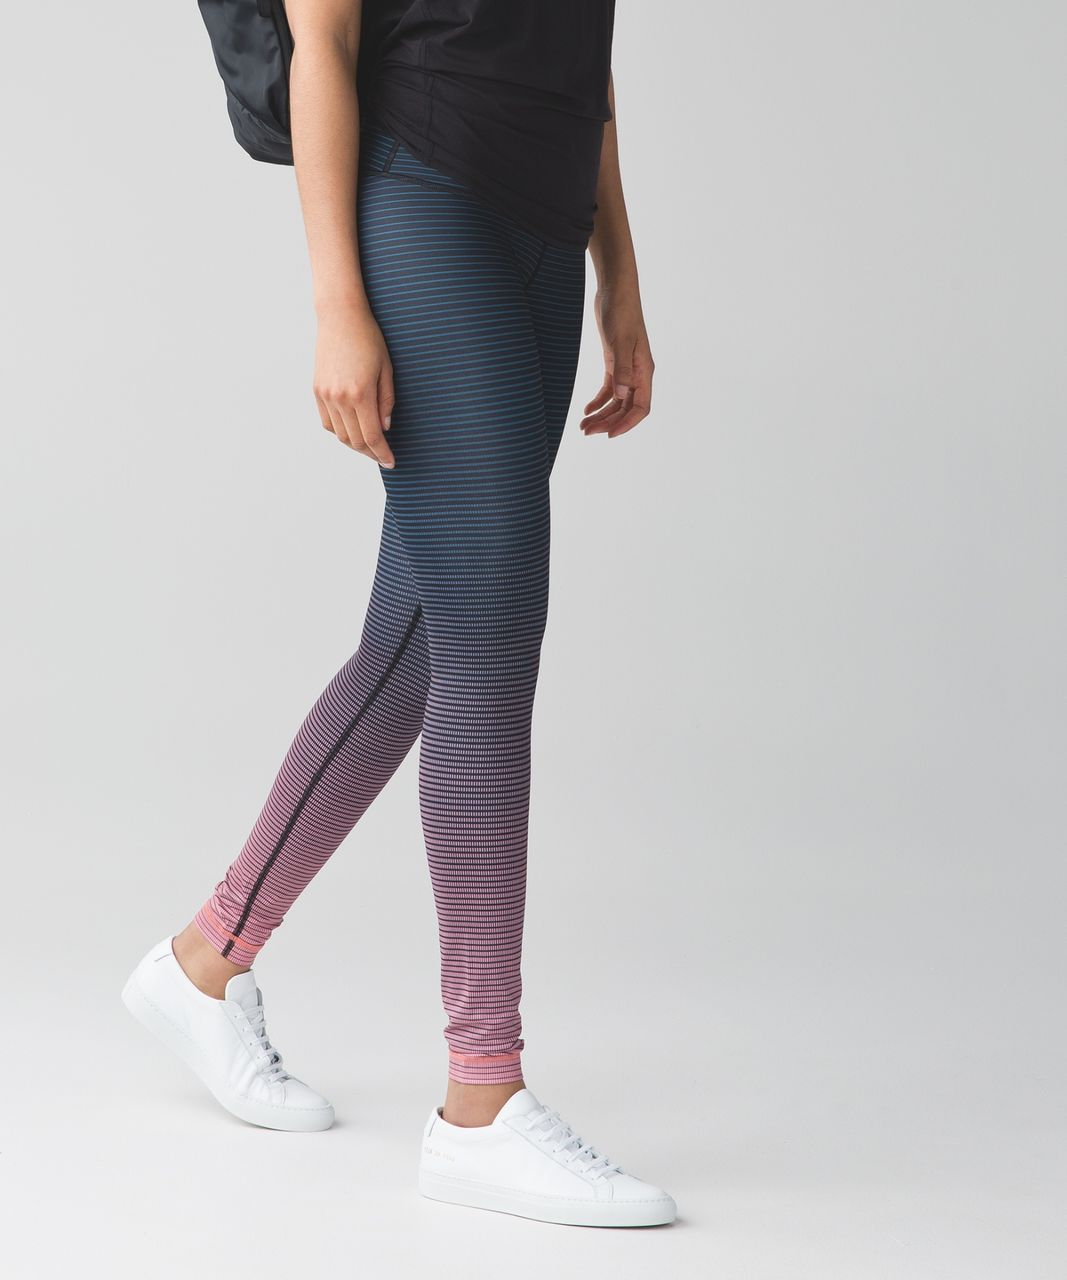 Lululemon Wunder Under Pant (Hi-Rise) (Full-On Luxtreme) - Double Gradient High Rise Yum Yum Pink Alberta Lake